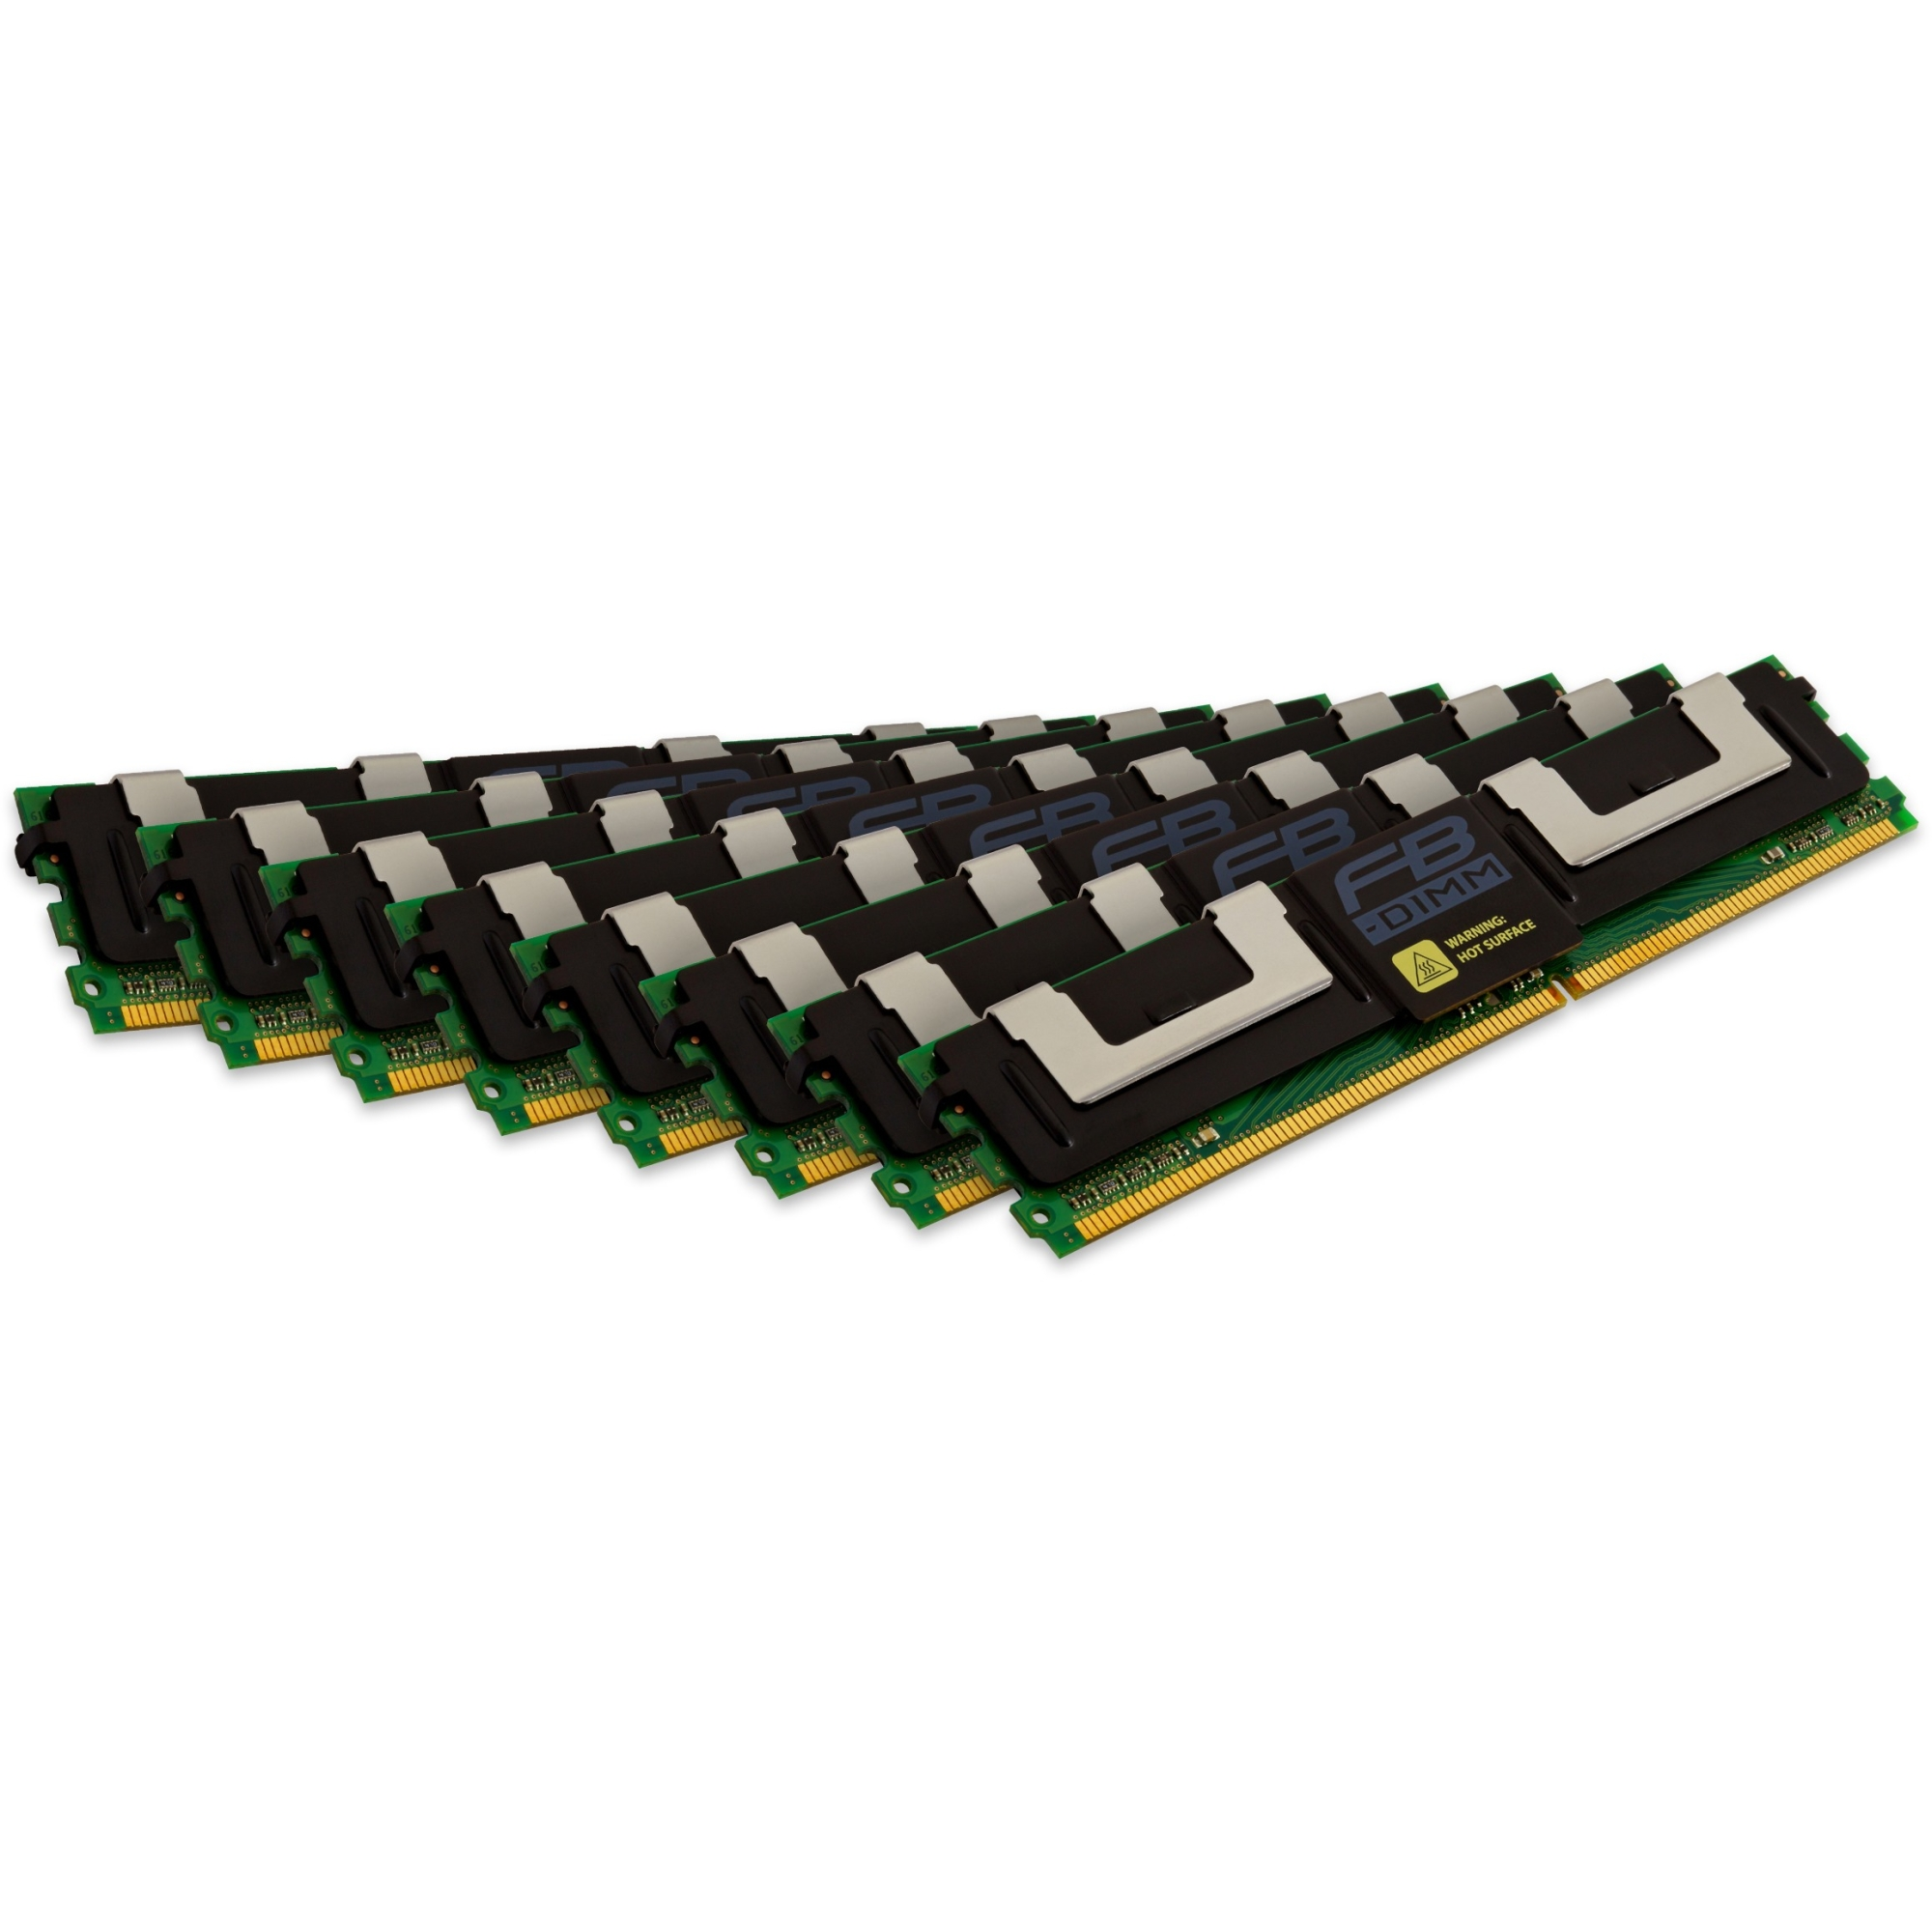 Kingston 64GB DDR2 SDRAM Memory Module - 64GB (8 x 8GB) - 667MHz (Refurbished)